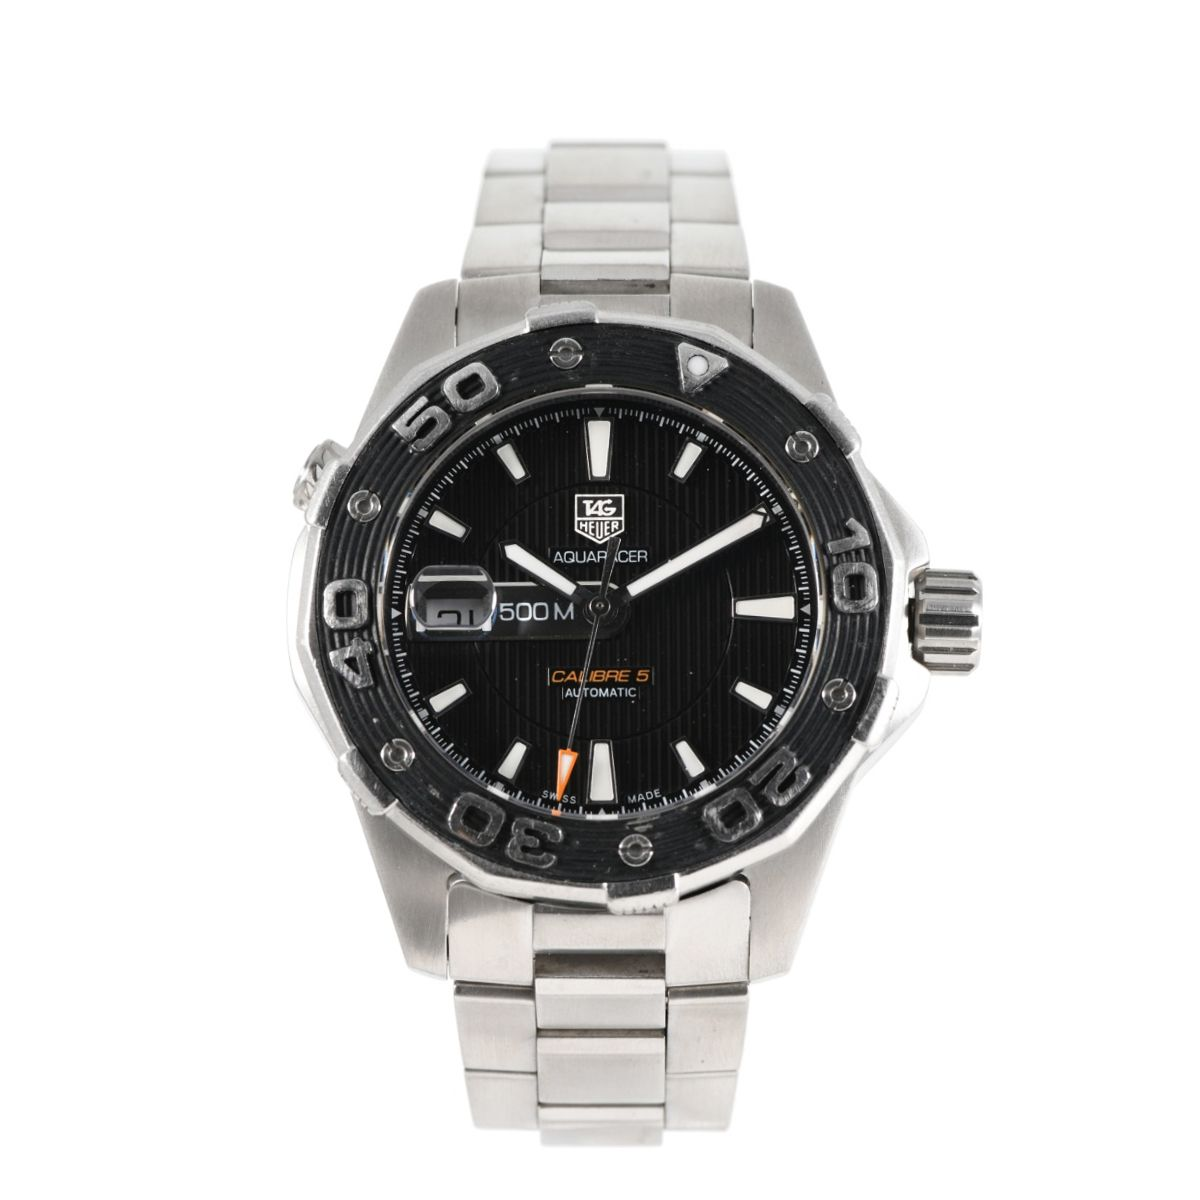 Tag Heuer Aquaracer WAJ2110 Steel Black 43mm Mens Watch